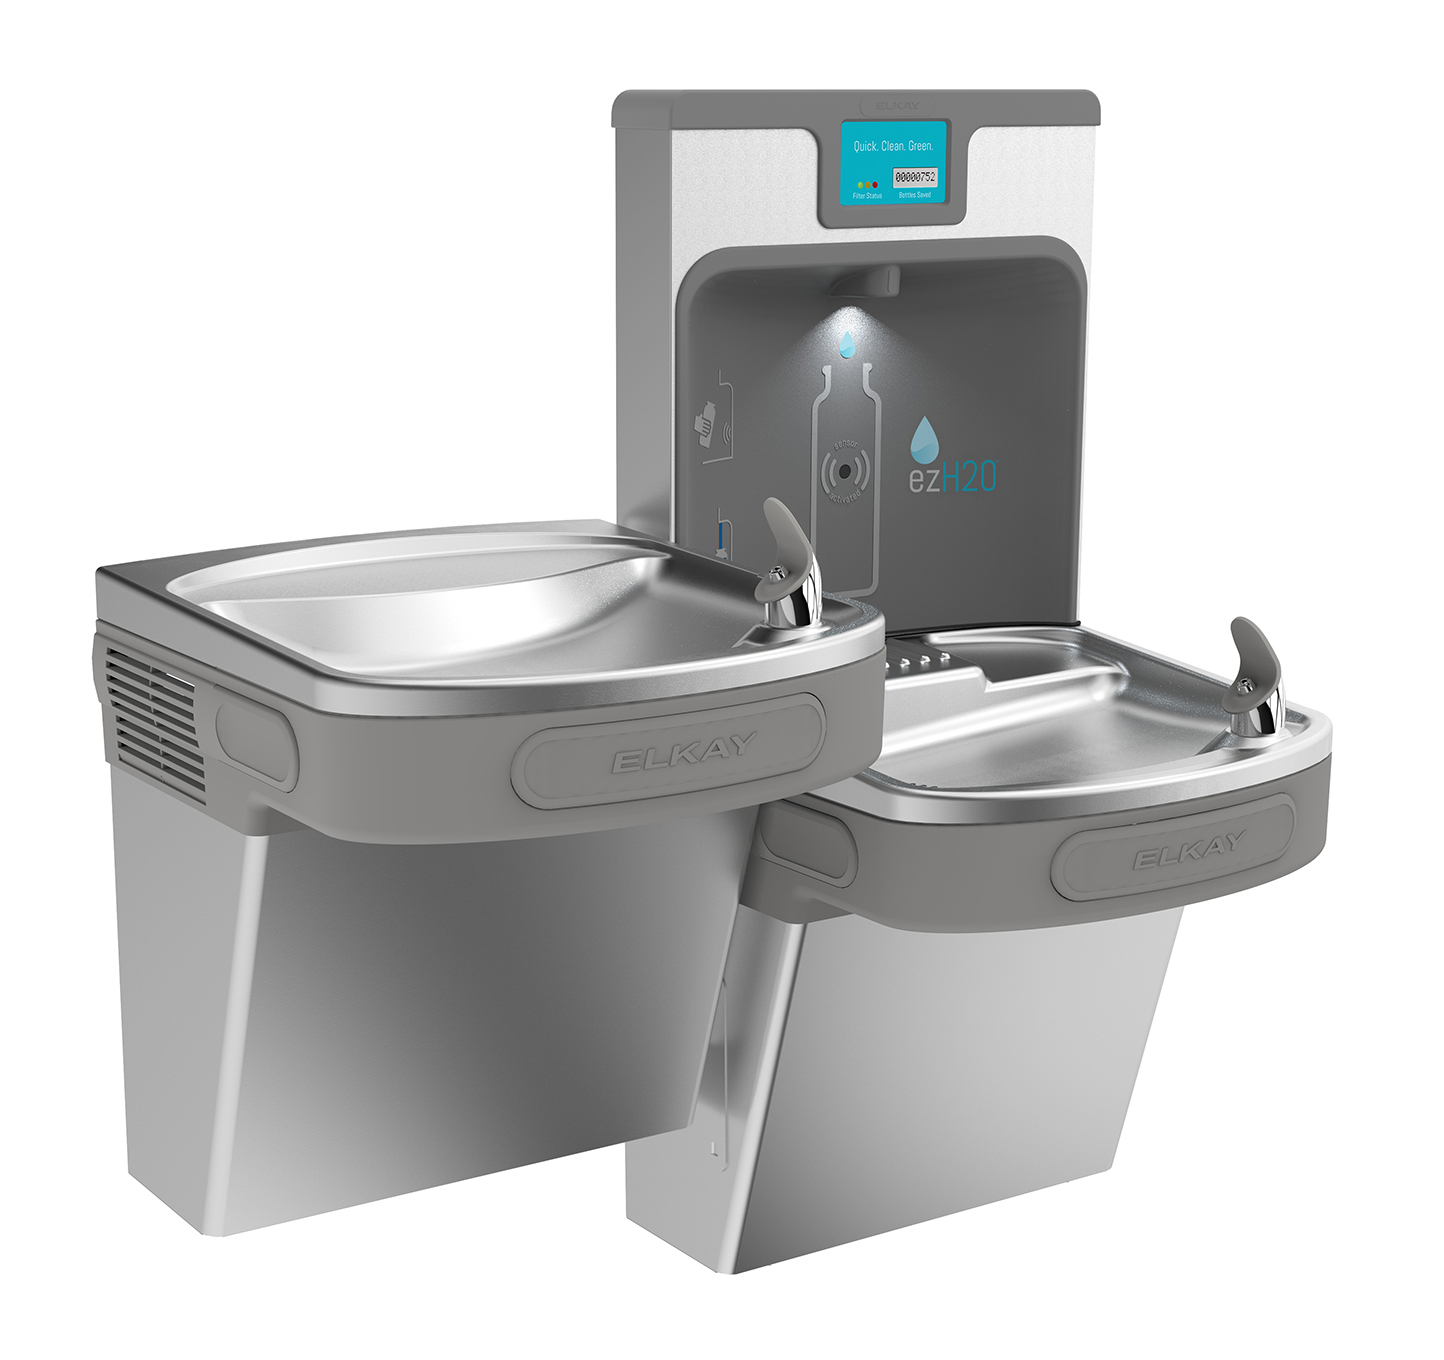 Midea Cooperate With Elkay In Outdoor Water Fountain